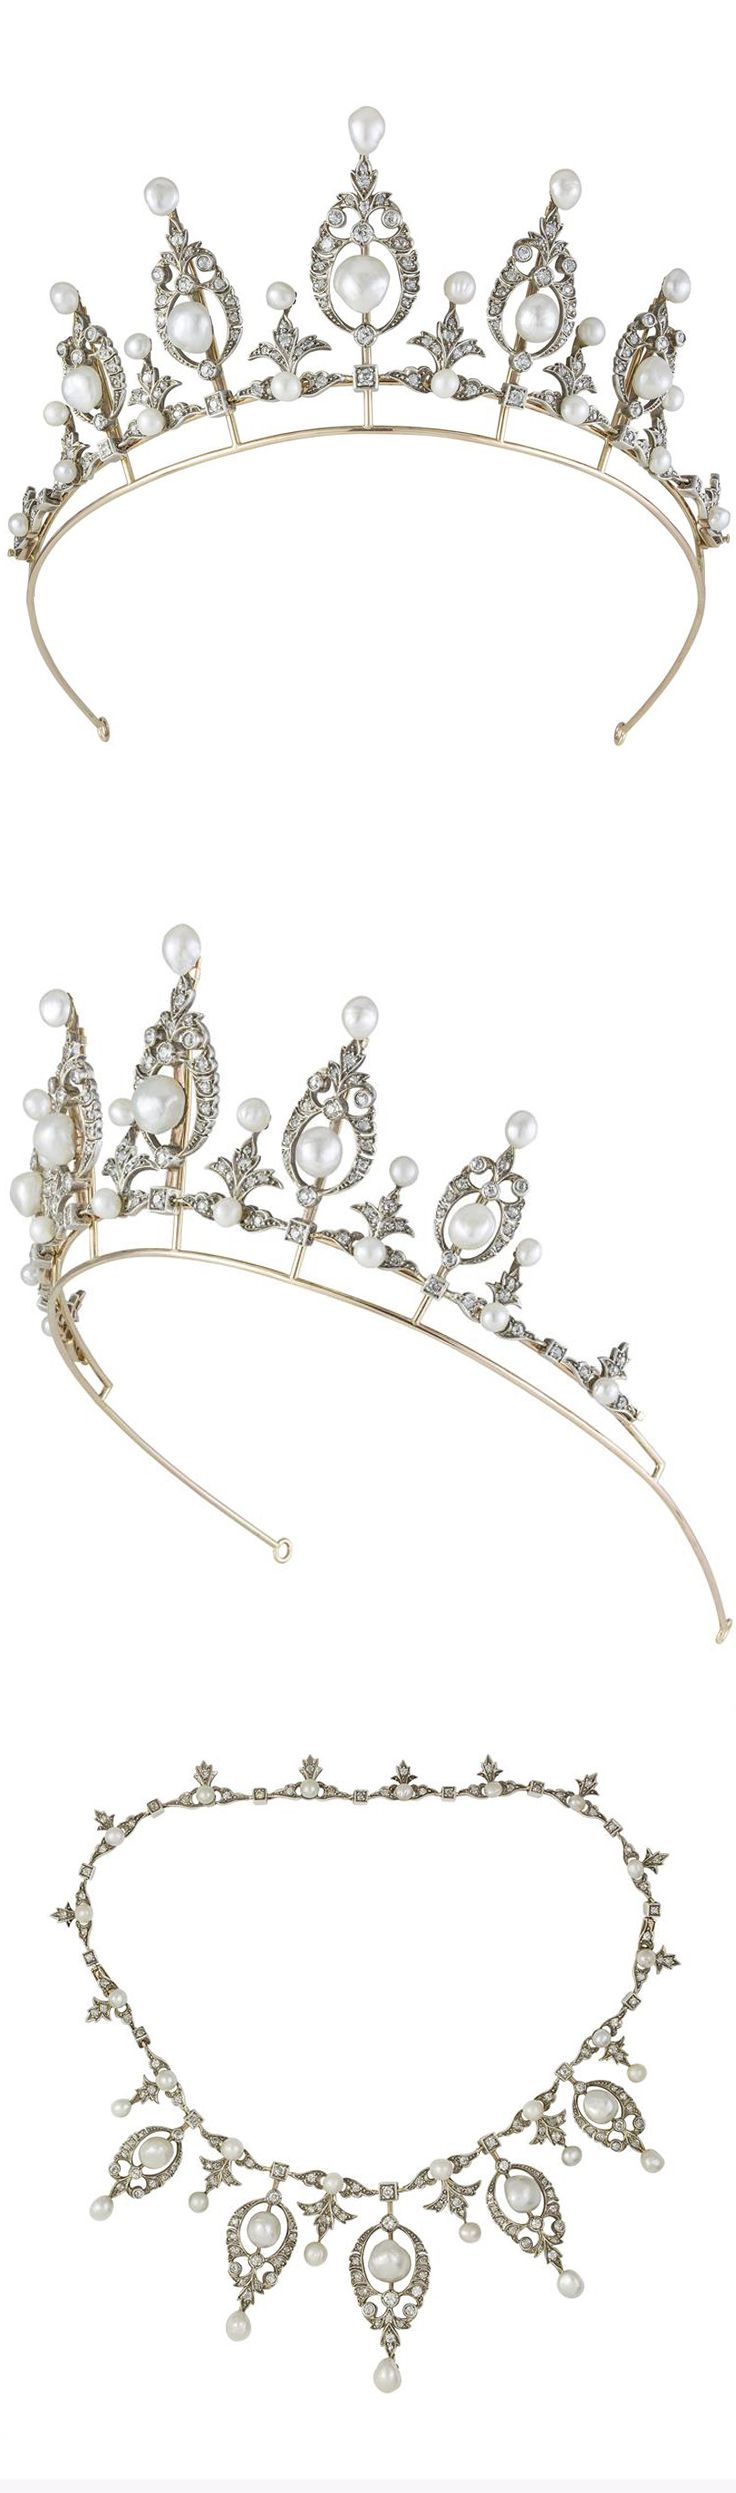 A late Victorian pearl and diamond tiara, the tiara comprising five graduated pearl and diamond clusters of an openwork scrollwork motif with natural pearl tops, diamond- and natural pearl-set floral motifs inbetween each to a gold frame, with a necklet chain of graduated pearl and diamond links with diamond drops, all of a foliate design, a diamond set within a square collet between each one, all diamonds estimated to weigh a total of 5.20 carats.